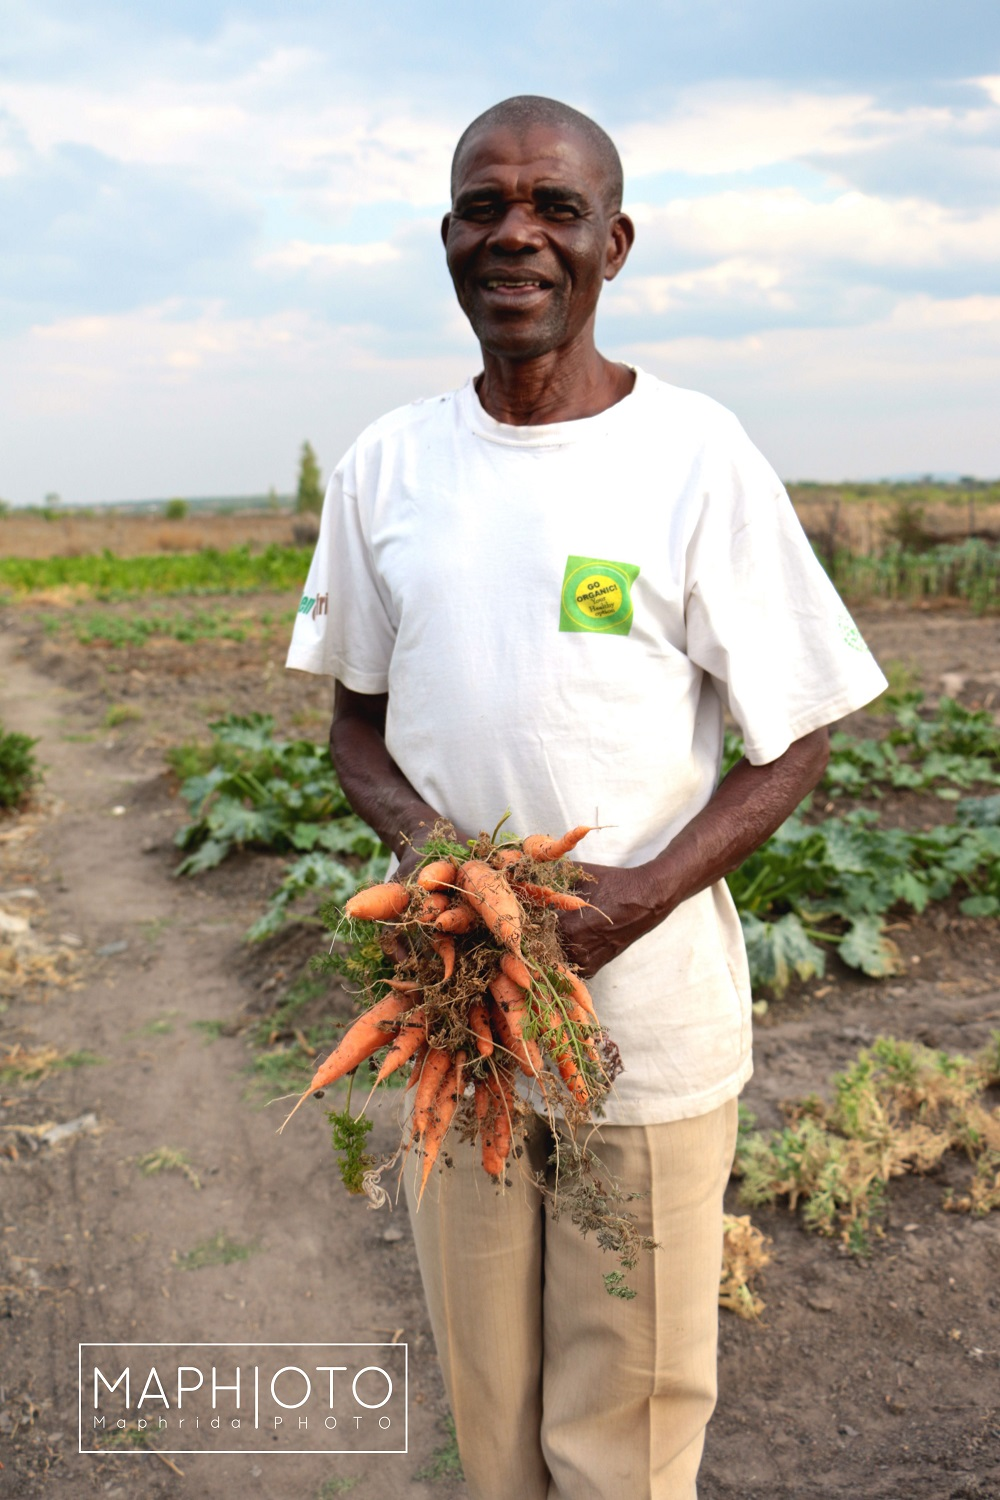 """Normal   0       21       false   false   false     DE-CH   X-NONE   X-NONE                                                                          Organic farmer from Wedza District with his organic carrots. Photo: Maphrida Forichi                                                                                                                                                                                                                                                                                              /* Style Definitions */  table.MsoNormalTable {mso-style-name:""""Table Normal""""; mso-tstyle-rowband-size:0; mso-tstyle-colband-size:0; mso-style-noshow:yes; mso-style-priority:99; mso-style-parent:""""""""; mso-padding-alt:0cm 5.4pt 0cm 5.4pt; mso-para-margin:0cm; mso-para-margin-bottom:.0001pt; mso-pagination:none; font-size:11.0pt; font-family:""""Calibri"""",""""sans-serif""""; mso-ascii-font-family:Calibri; mso-ascii-theme-font:minor-latin; mso-hansi-font-family:Calibri; mso-hansi-theme-font:minor-latin; mso-ansi-language:EN-US; mso-fareast-language:EN-US;}"""